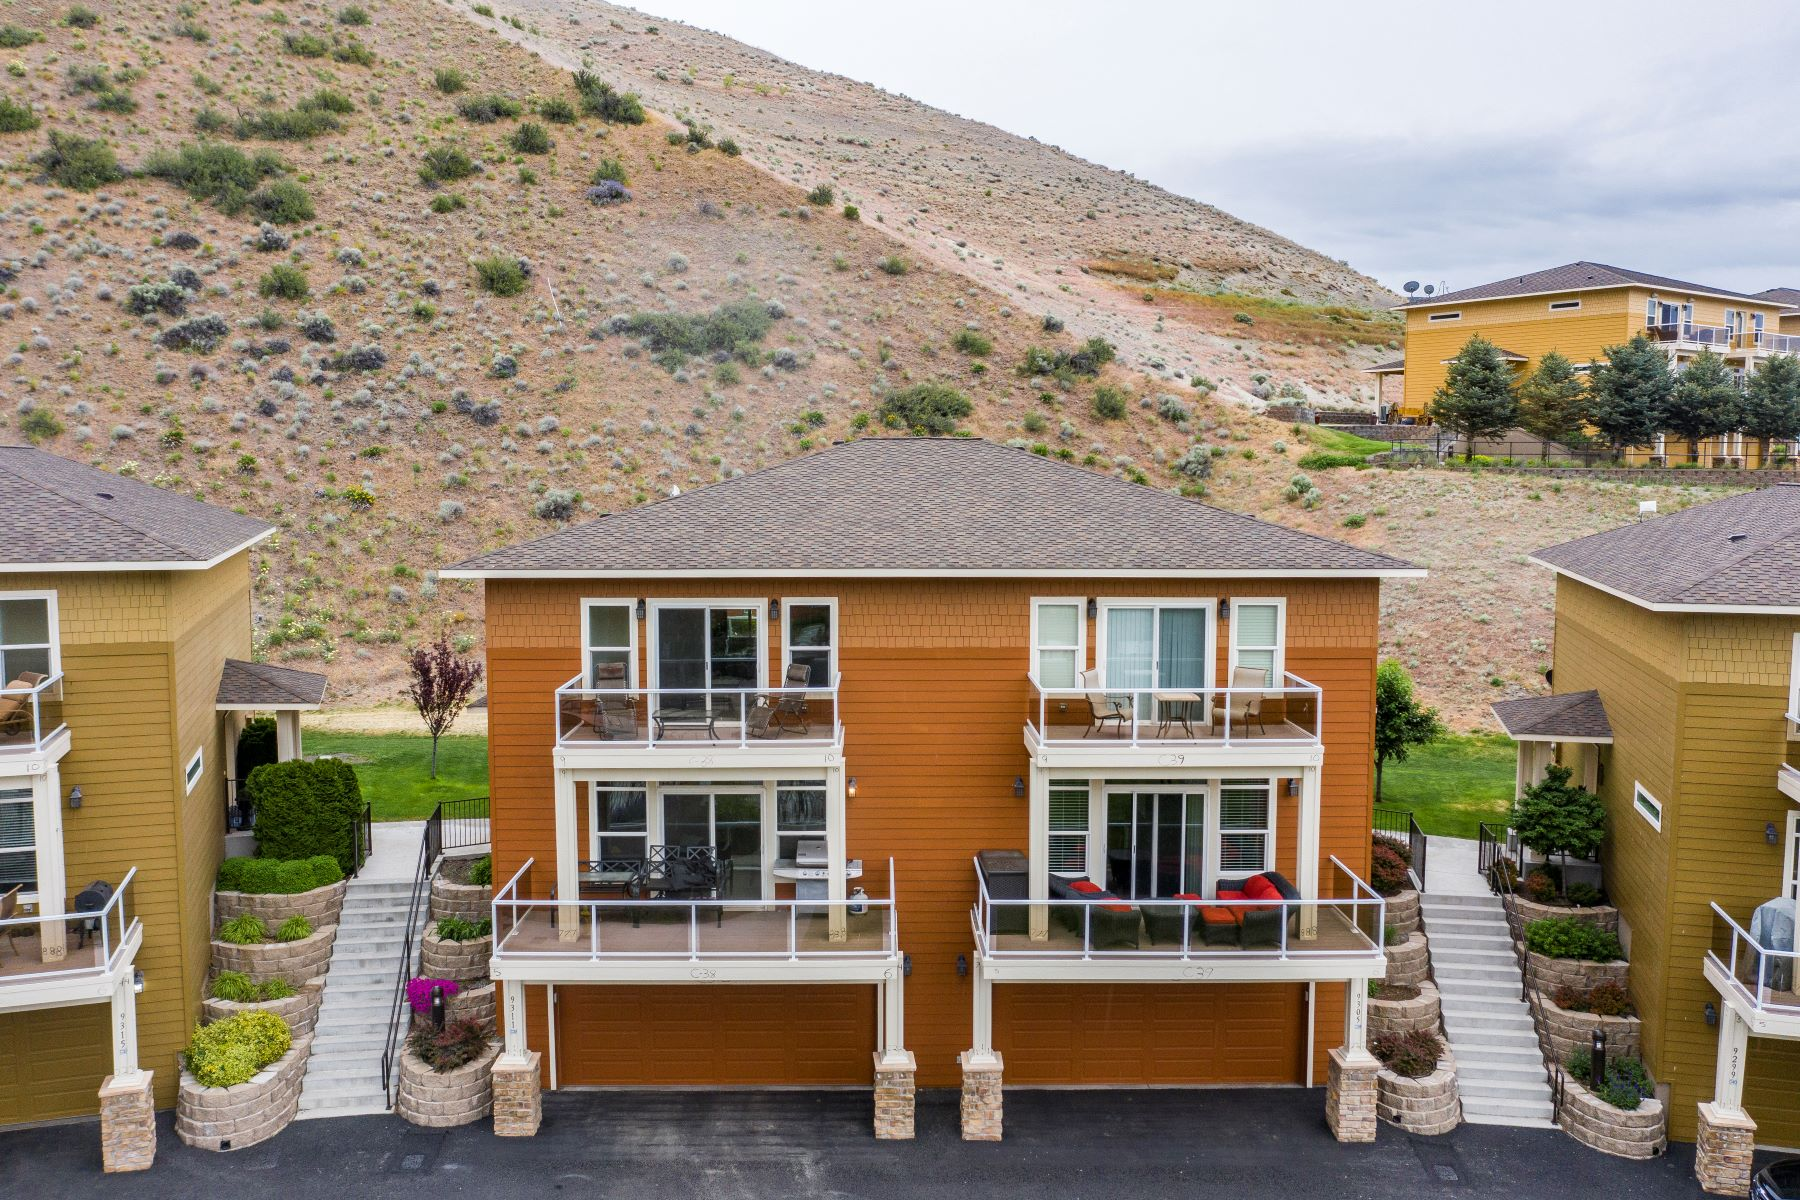 townhouses for Sale at 9311 Canyon Dr. NW#C-38, Quincy, WA 98848 9311 Canyon Dr. NW Unit #C-38 Quincy, Washington 98848 United States